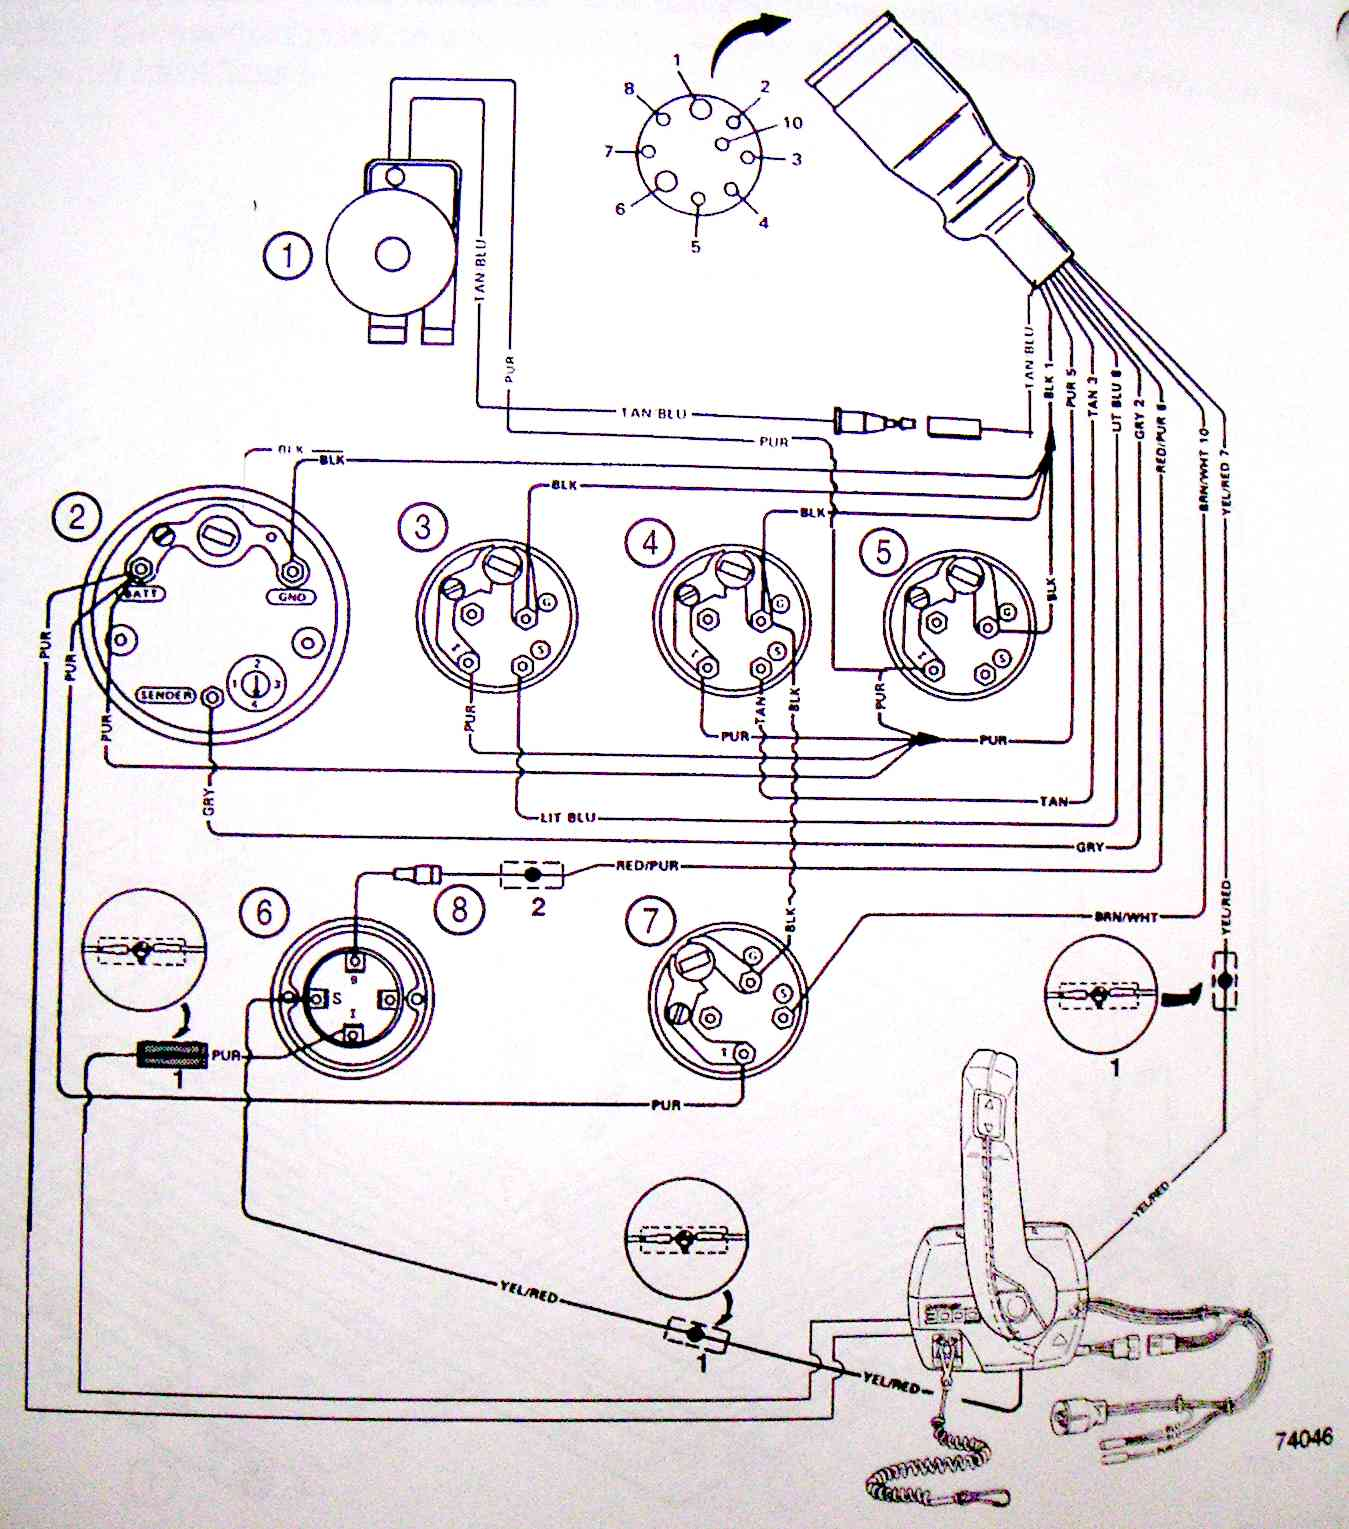 BoatHarness74046 michael's tractors (simplicity and allis chalmers garden tractors mercruiser shift interrupter switch wiring diagram at crackthecode.co